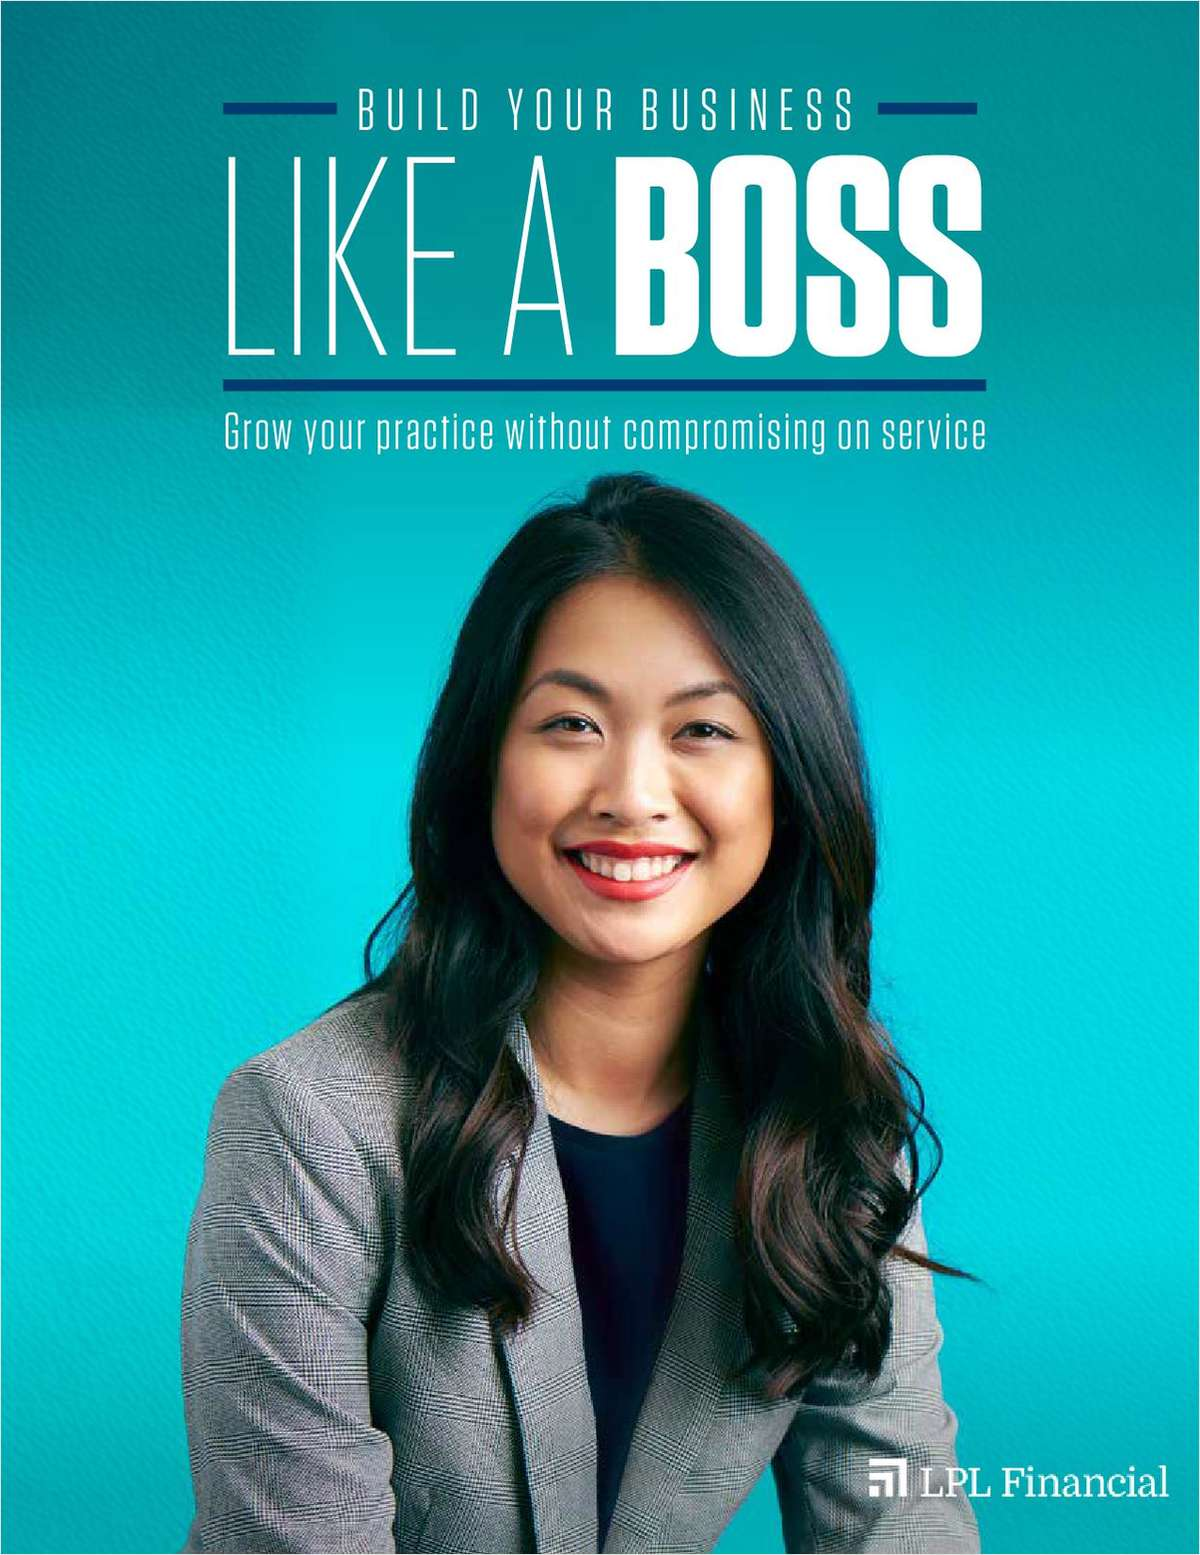 Build Your Business Like a Boss: Grow Your Practice Without Compromising on Service